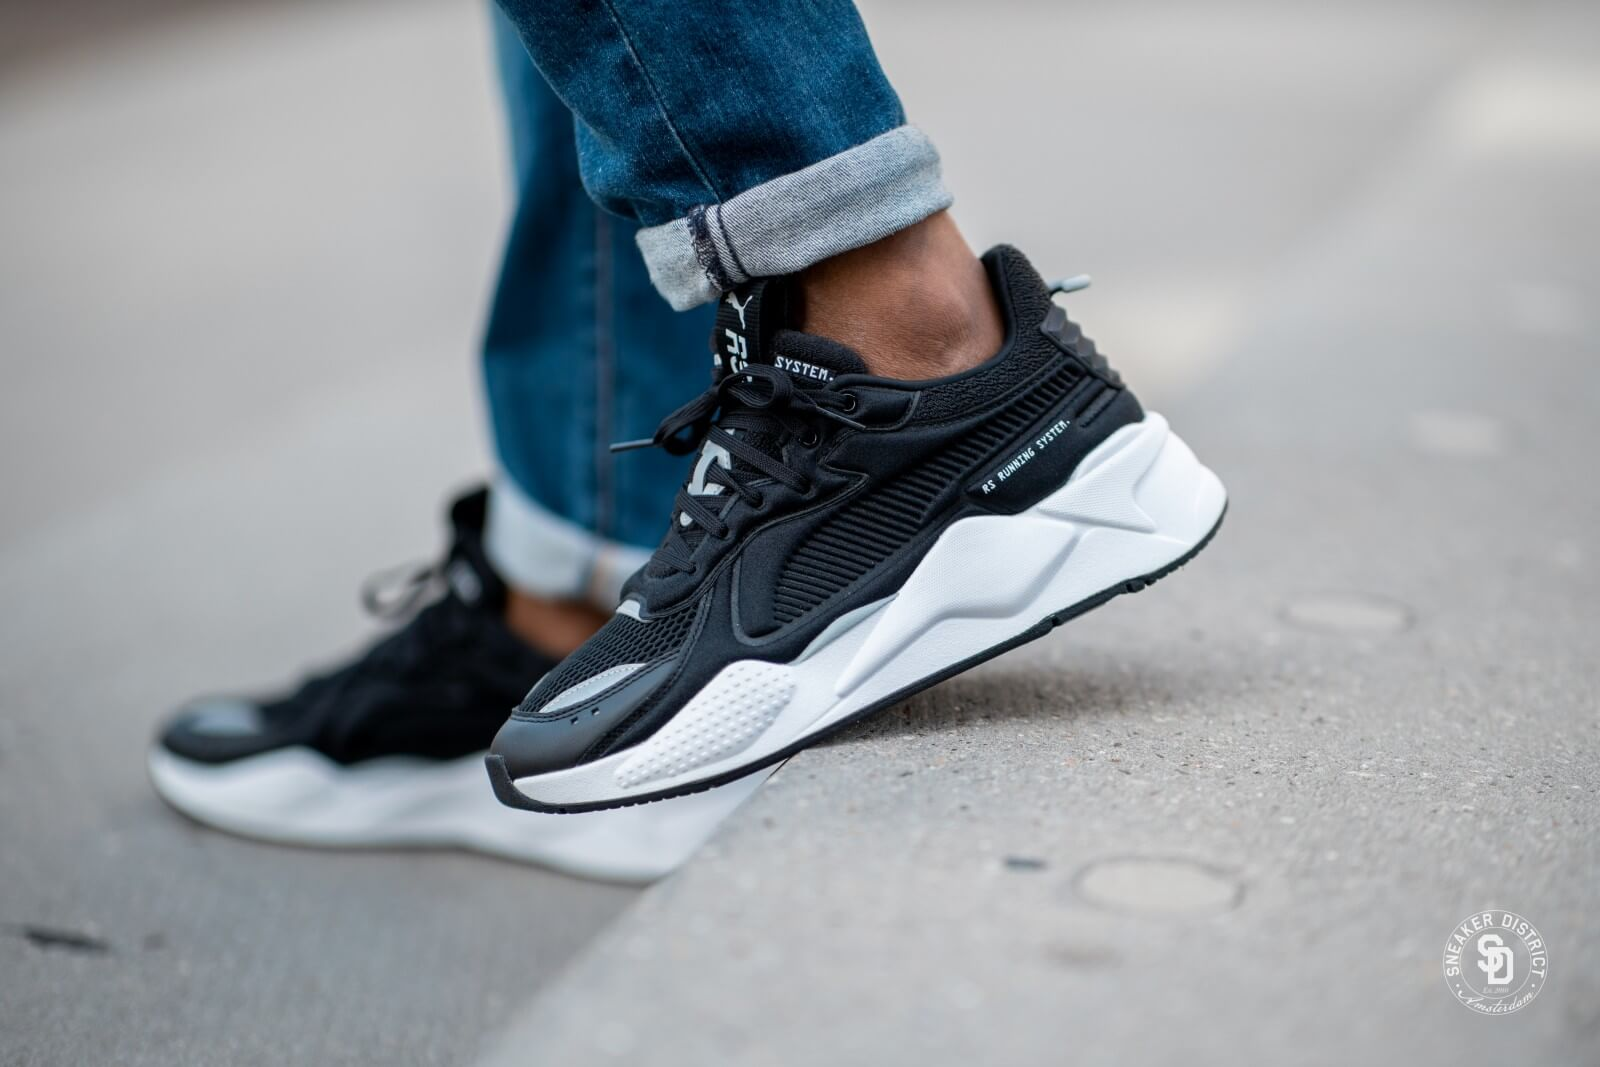 Puma RS-X Softcase Puma Black/Puma White - 369819-01